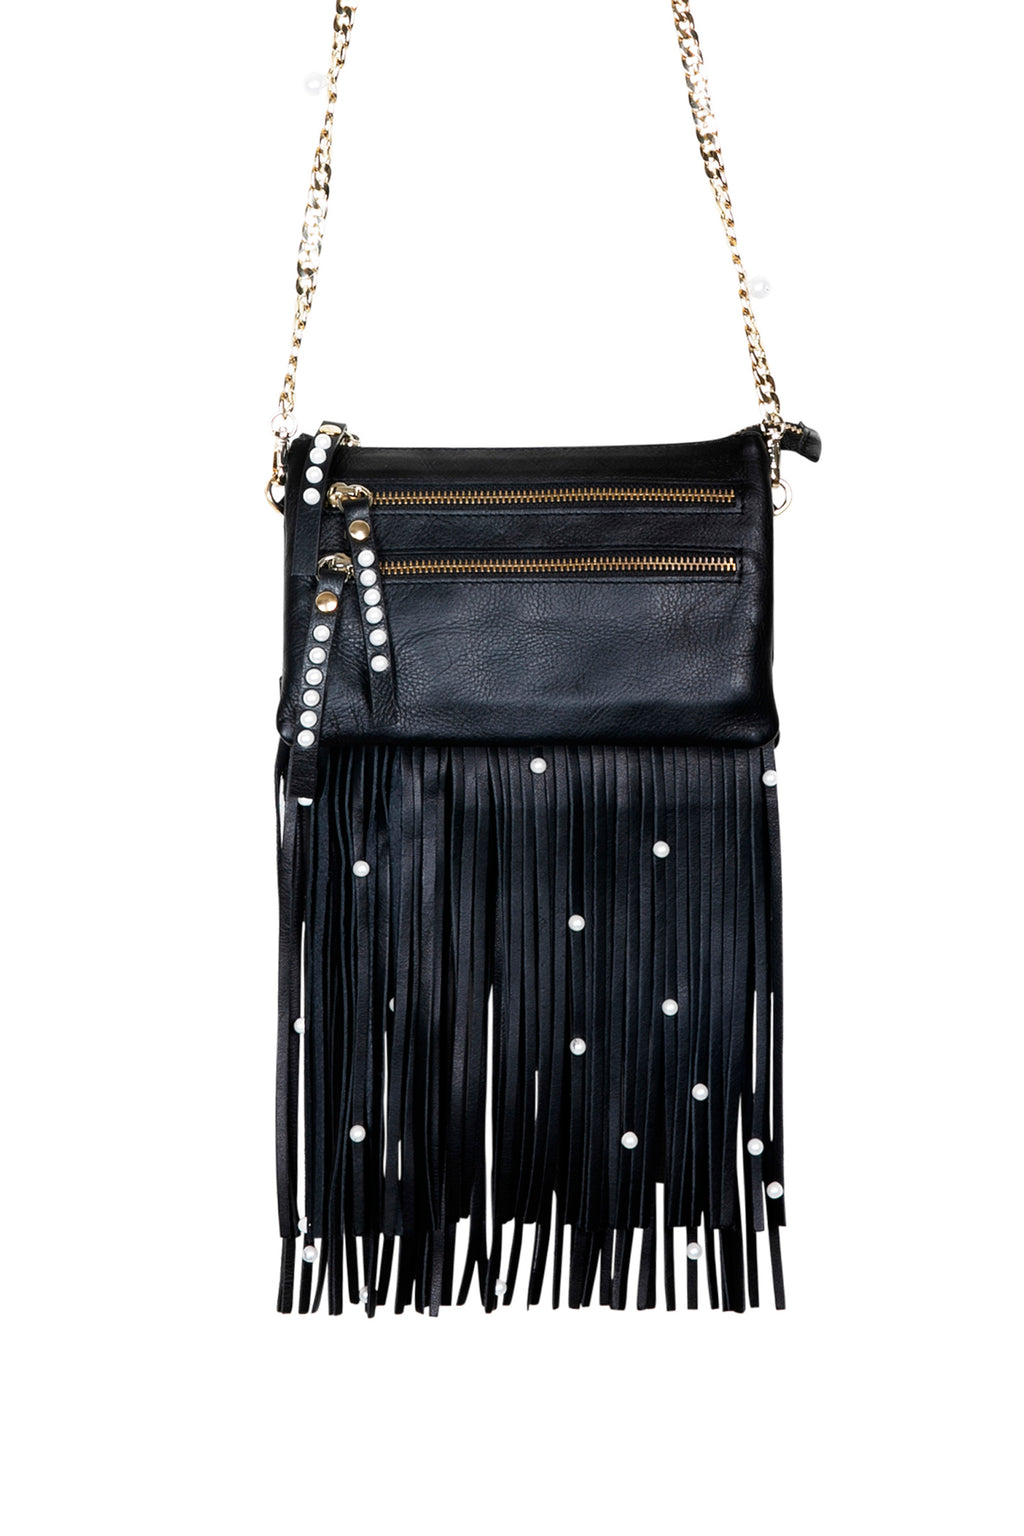 Black Leather Bag with Detachable Tassels